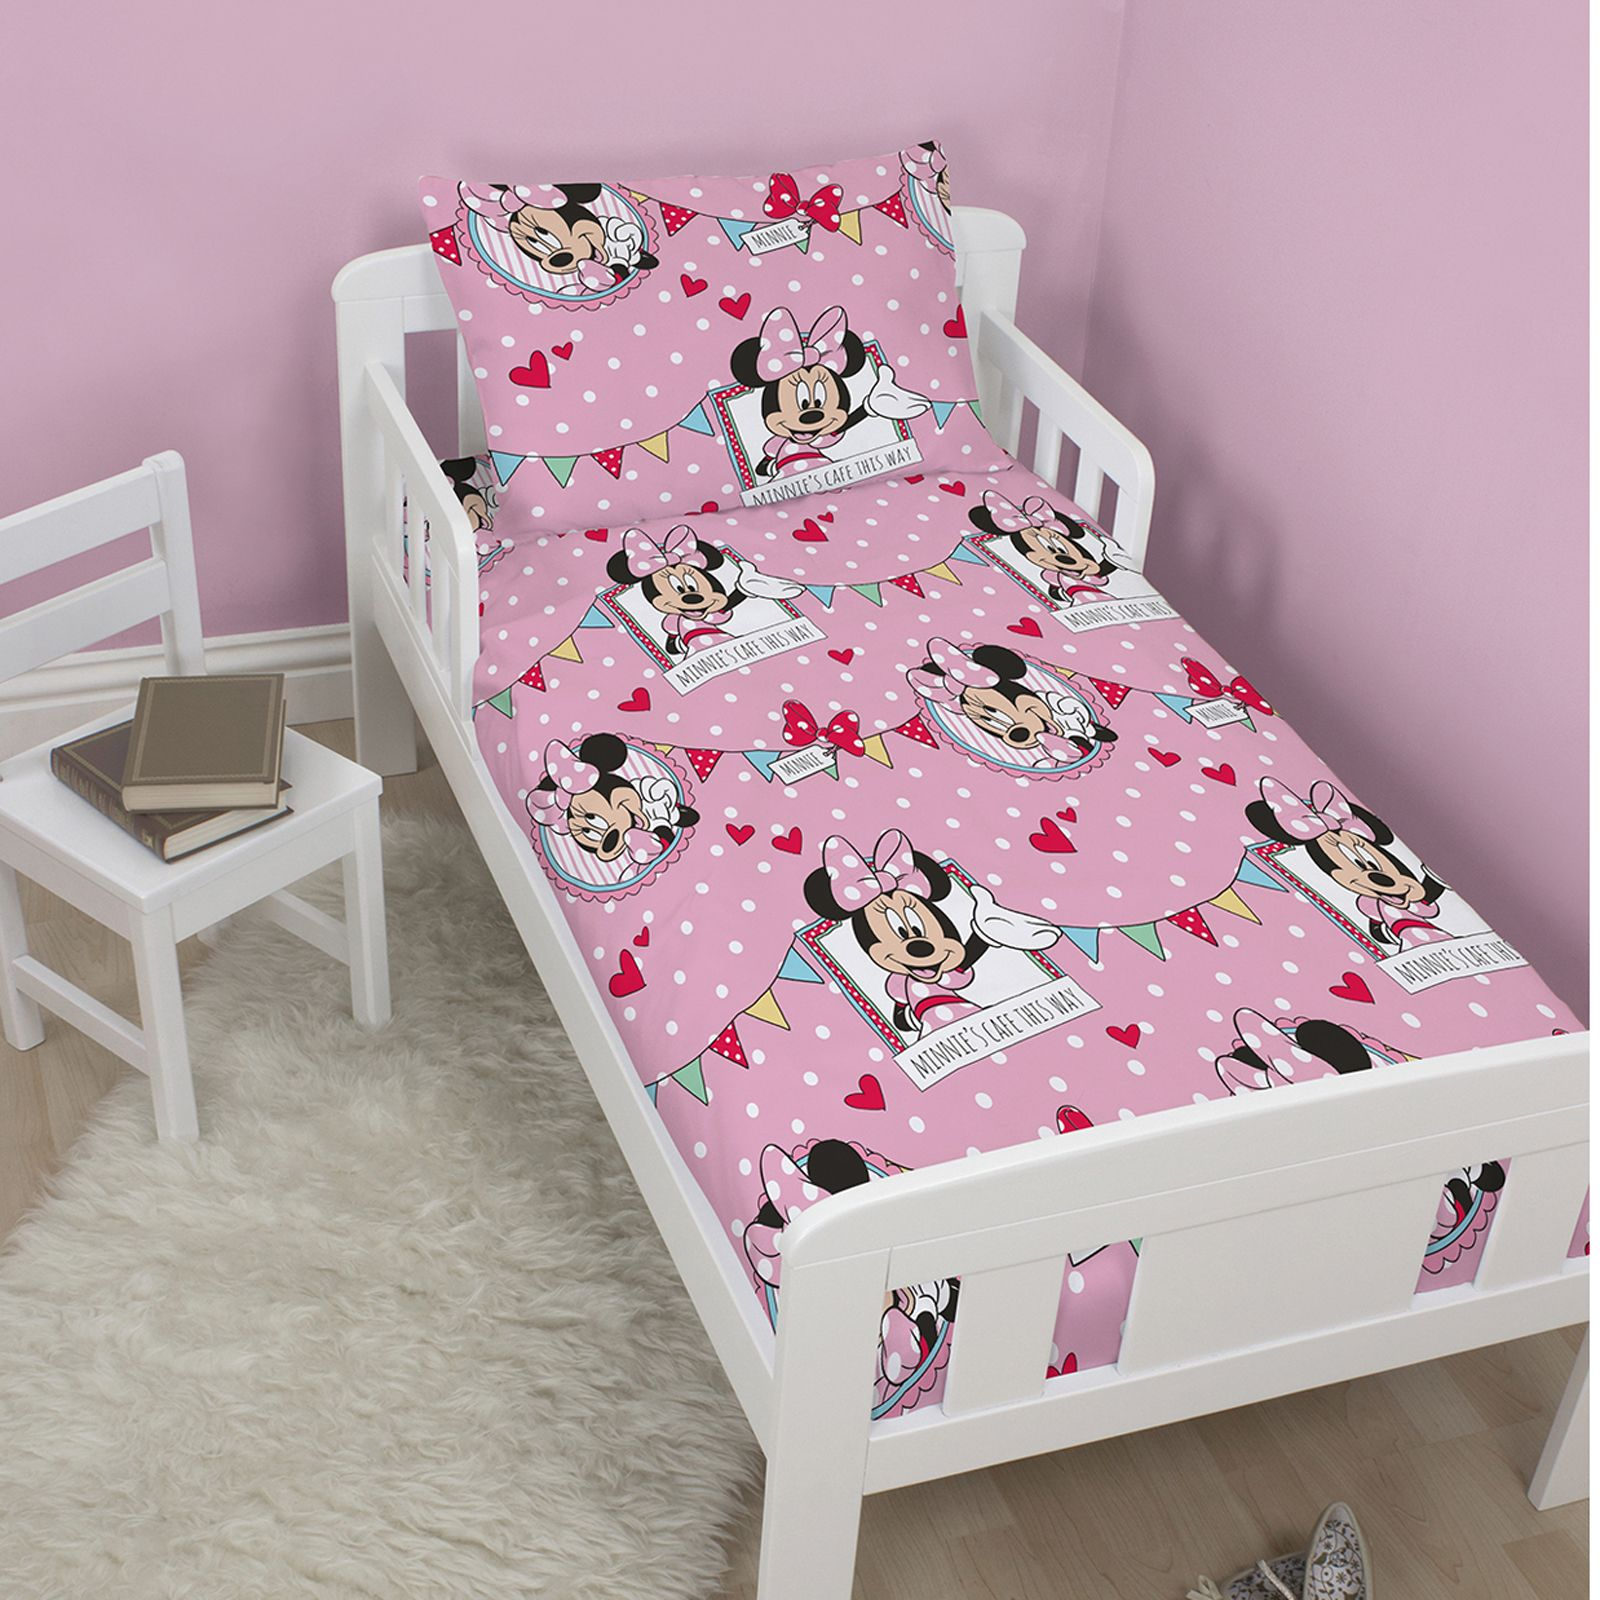 MINNIE MOUSE 'CAFE' JUNIOR BED SET 4 In 1 BEDDING BUNDLE